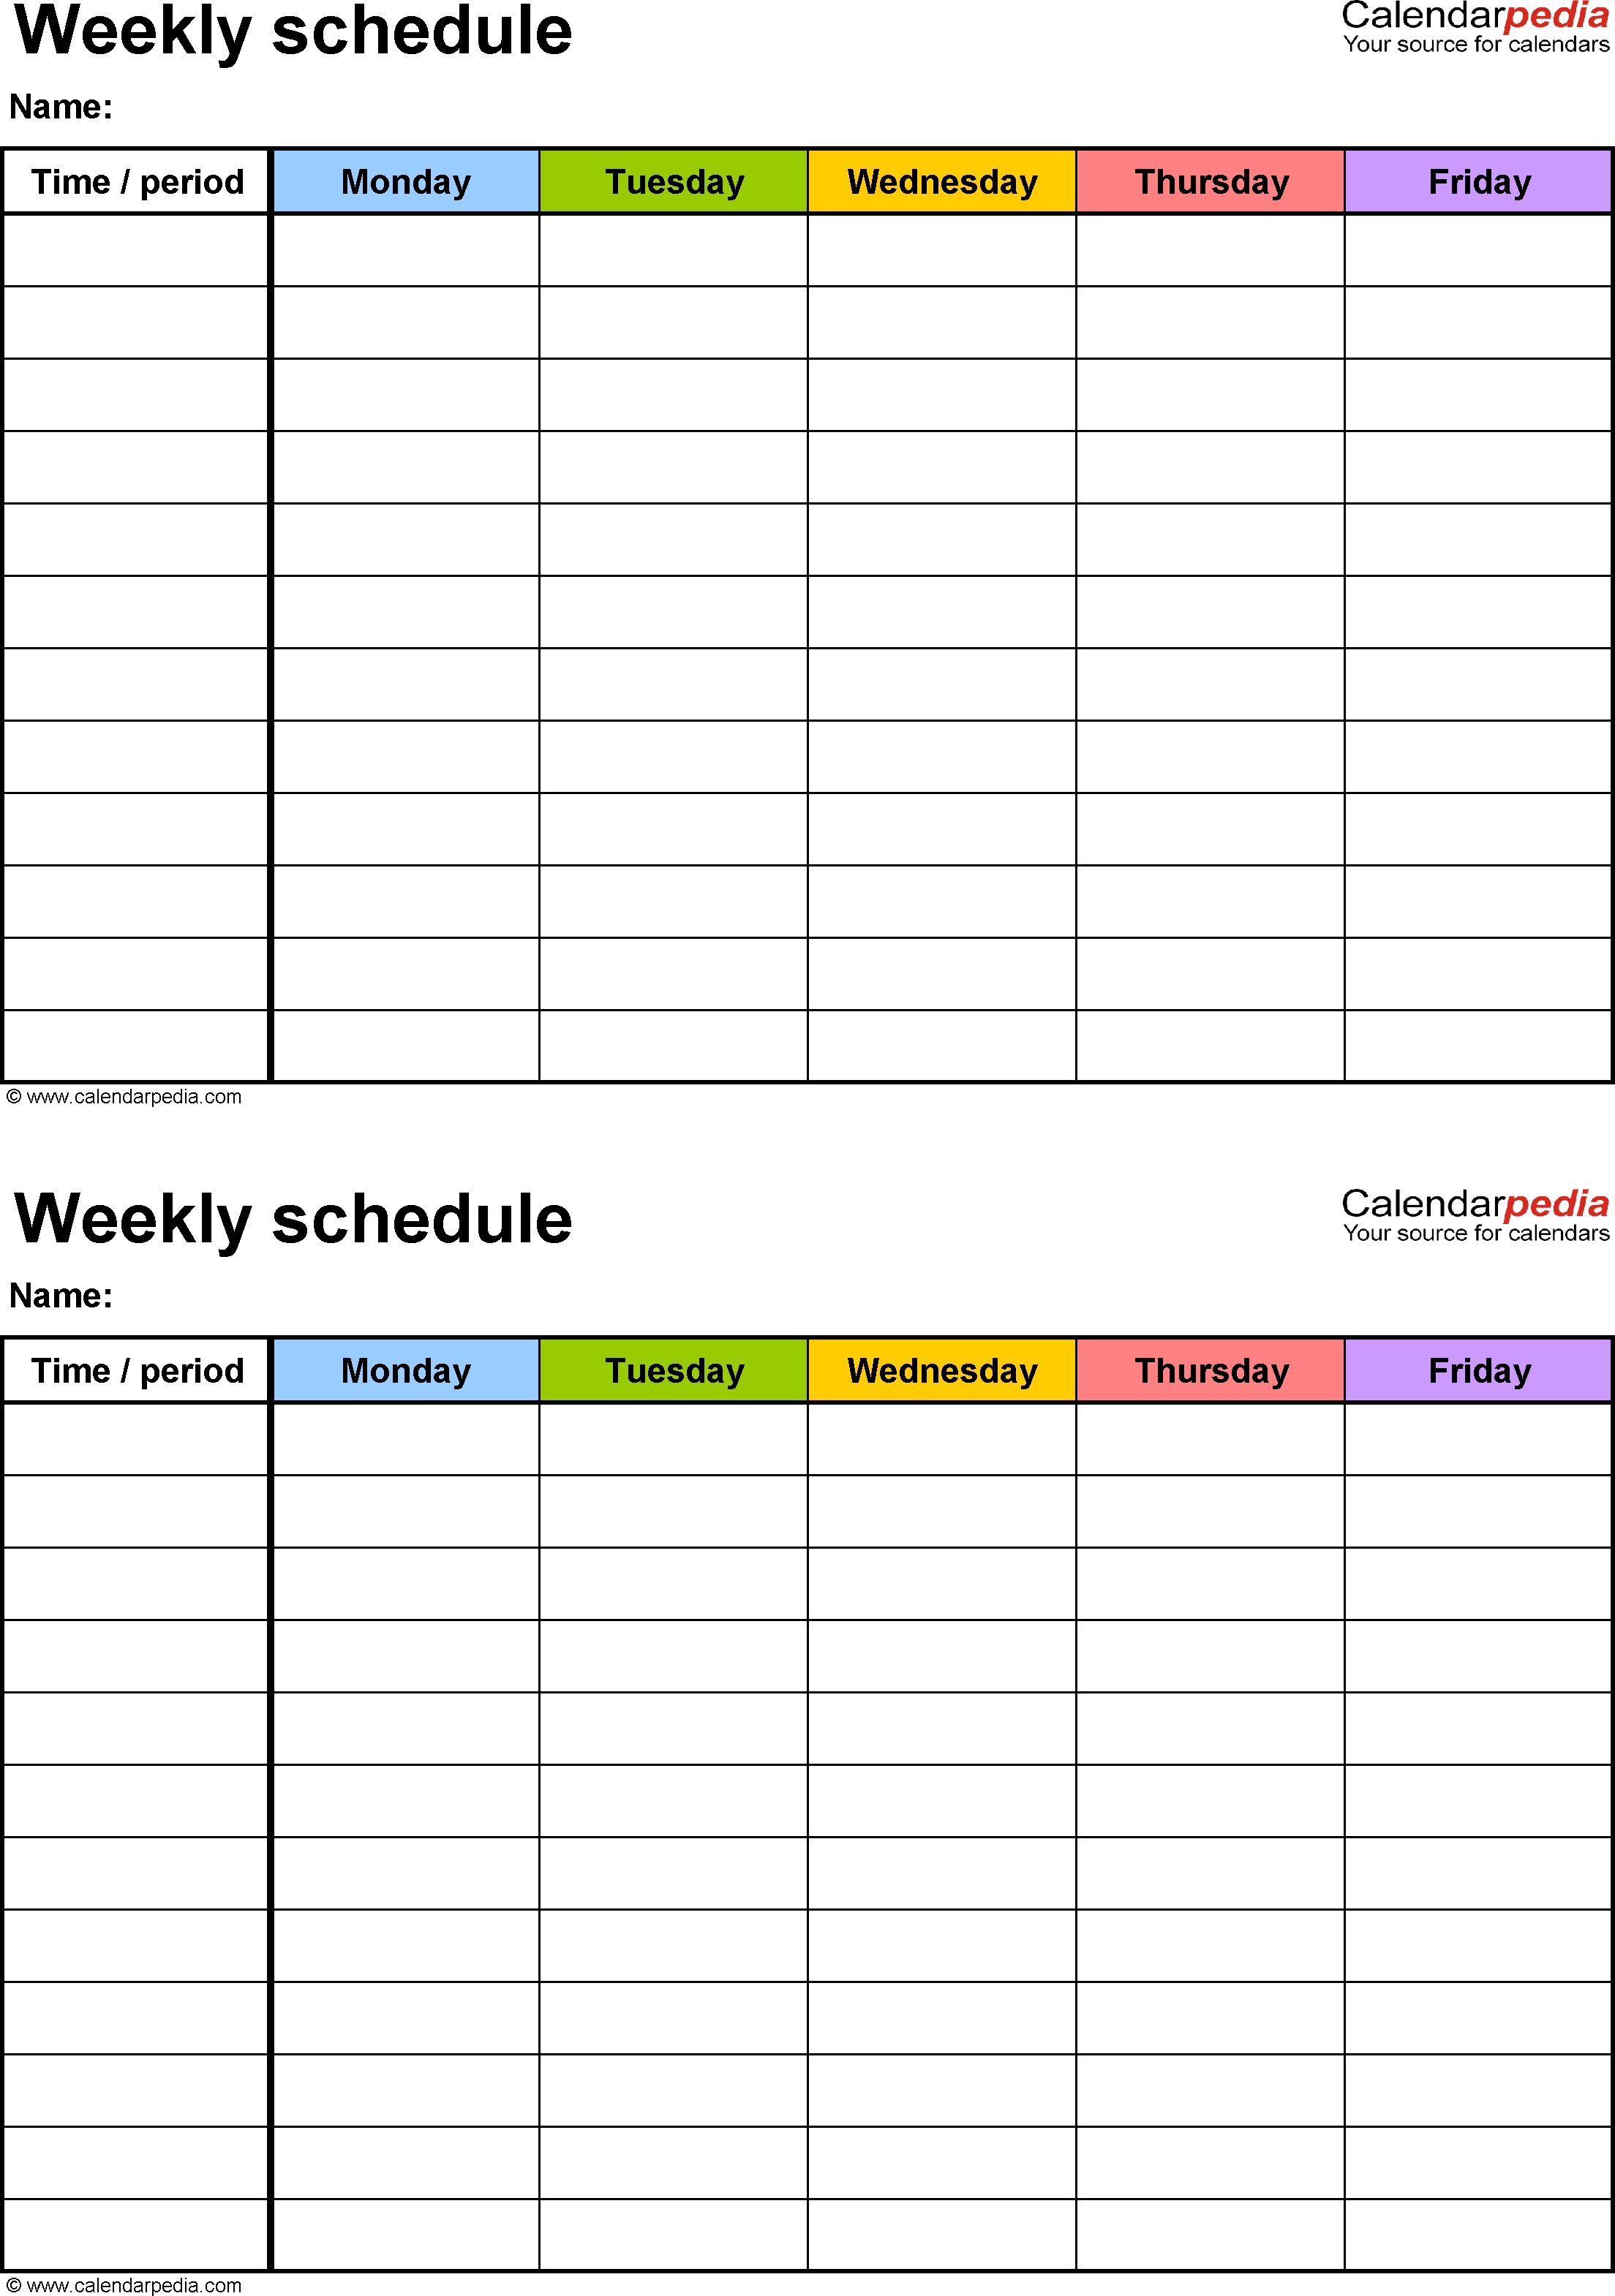 Free Weekly Schedule Templates For Excel - 18 Templates within Blank Schedule Sheet With Times